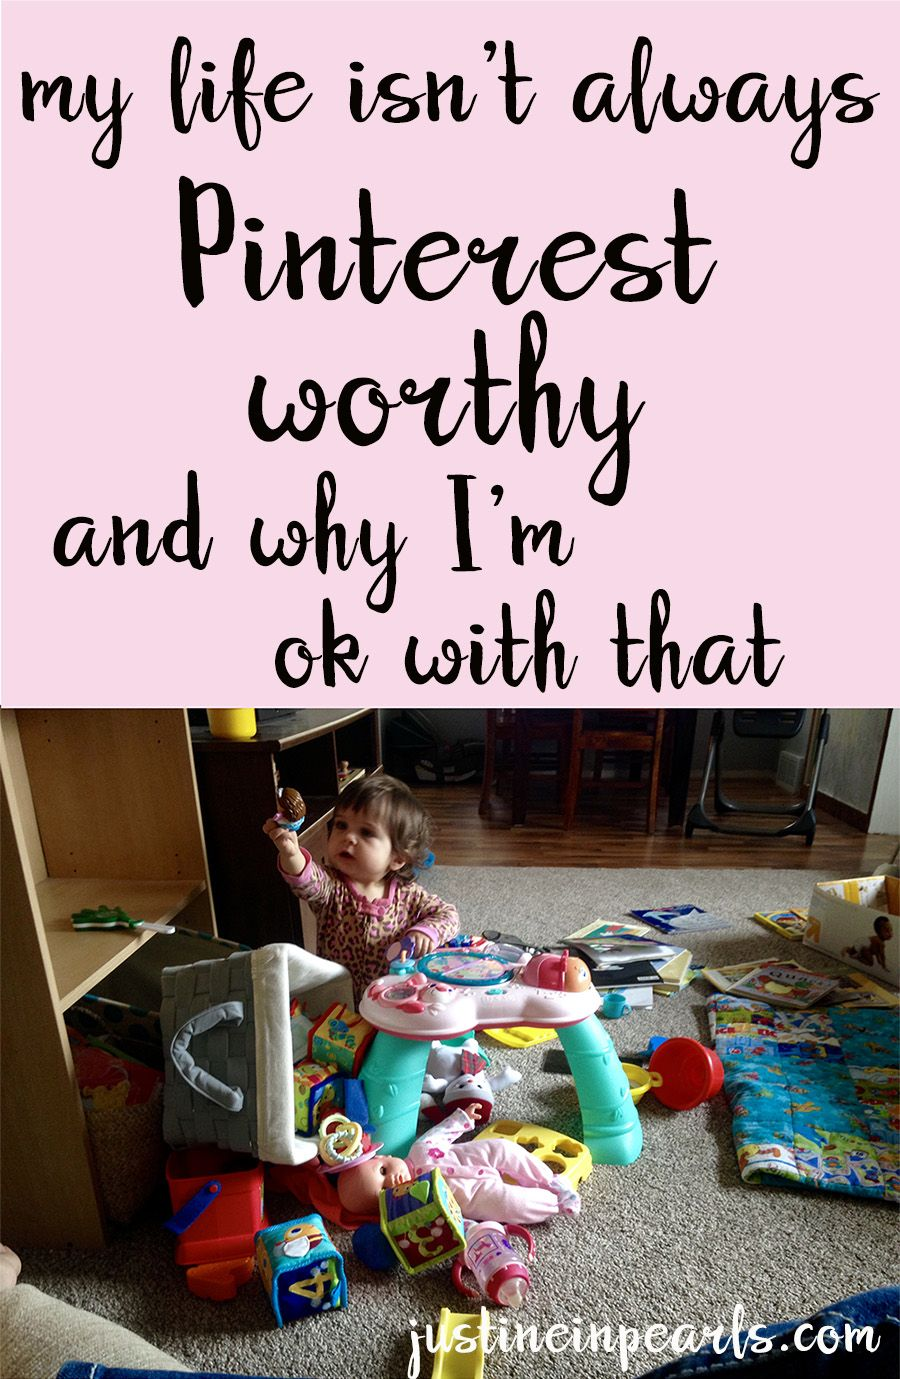 I LOVE beautiful blogs and I am WAY out of control with my Pinterest usage. I love the ideas and the DIY's and the outfits and the everything. But I need to remind myself constantly that what we see online isn't always the whole picture and my life is going to be different from said pictures. And that's ok.